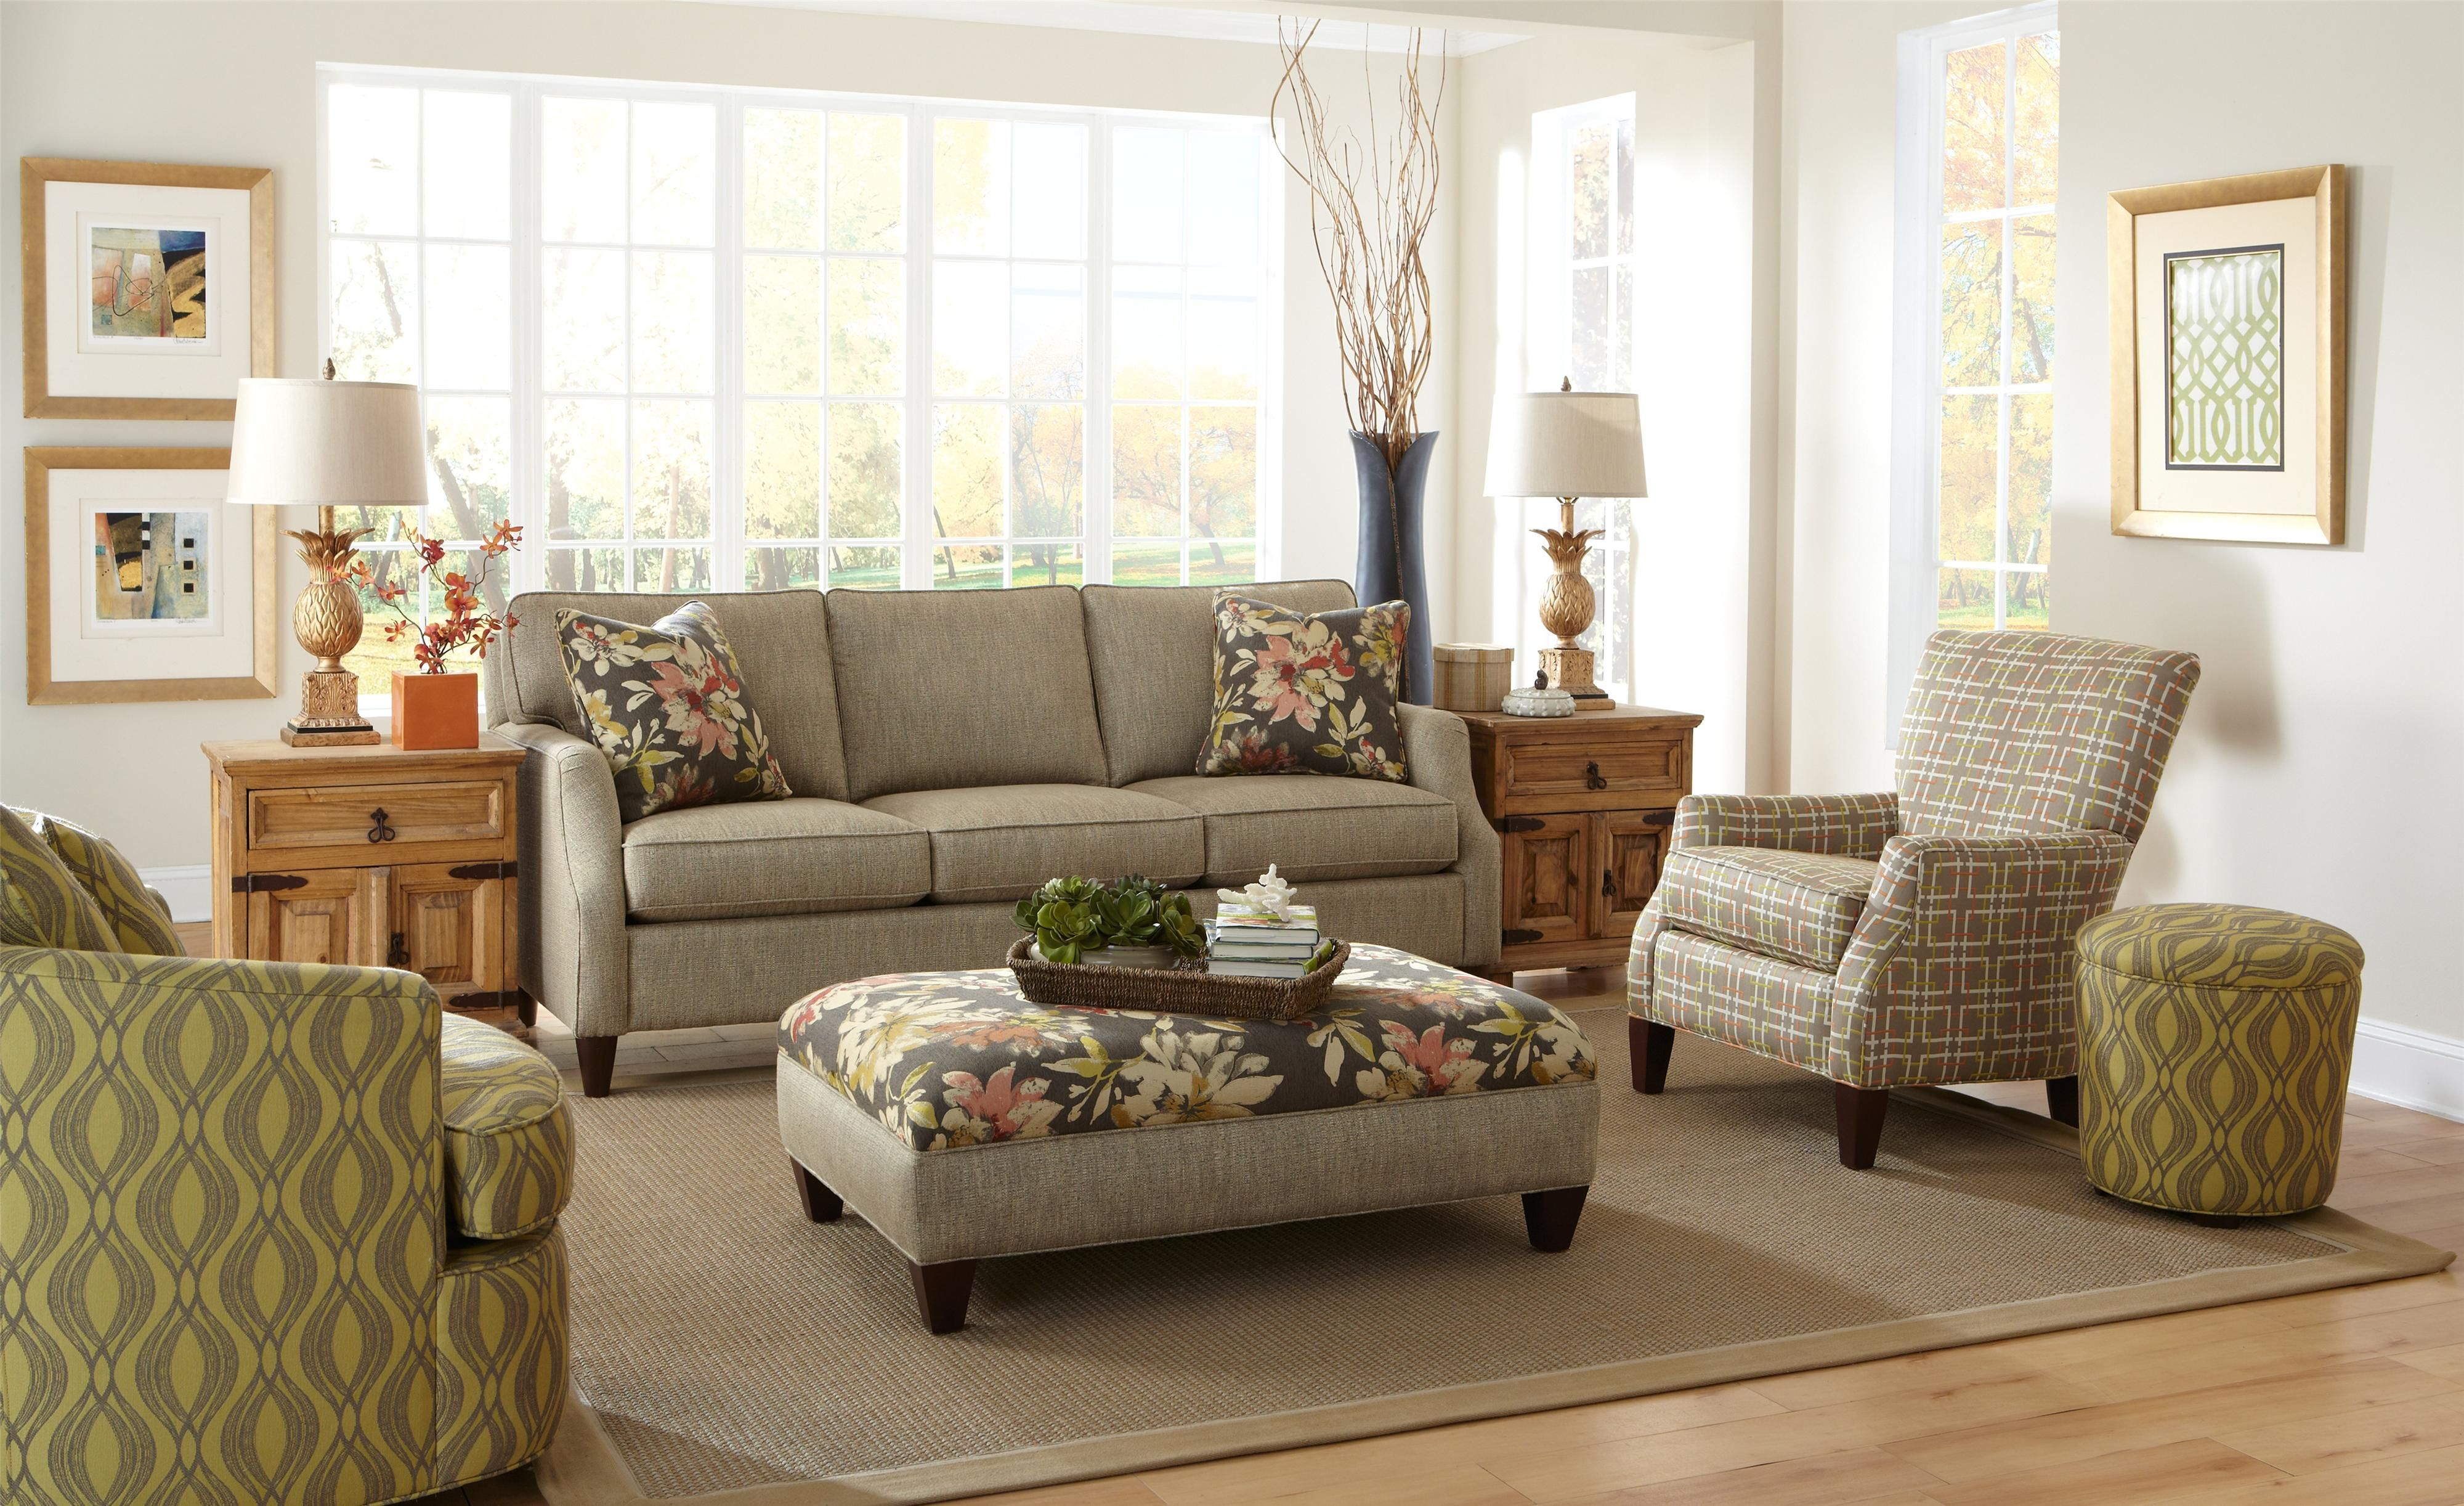 736400 Transitional Sofa With Flair Tapered Arms By Craftmaster Home Living Room Craftmaster Furniture Furniture